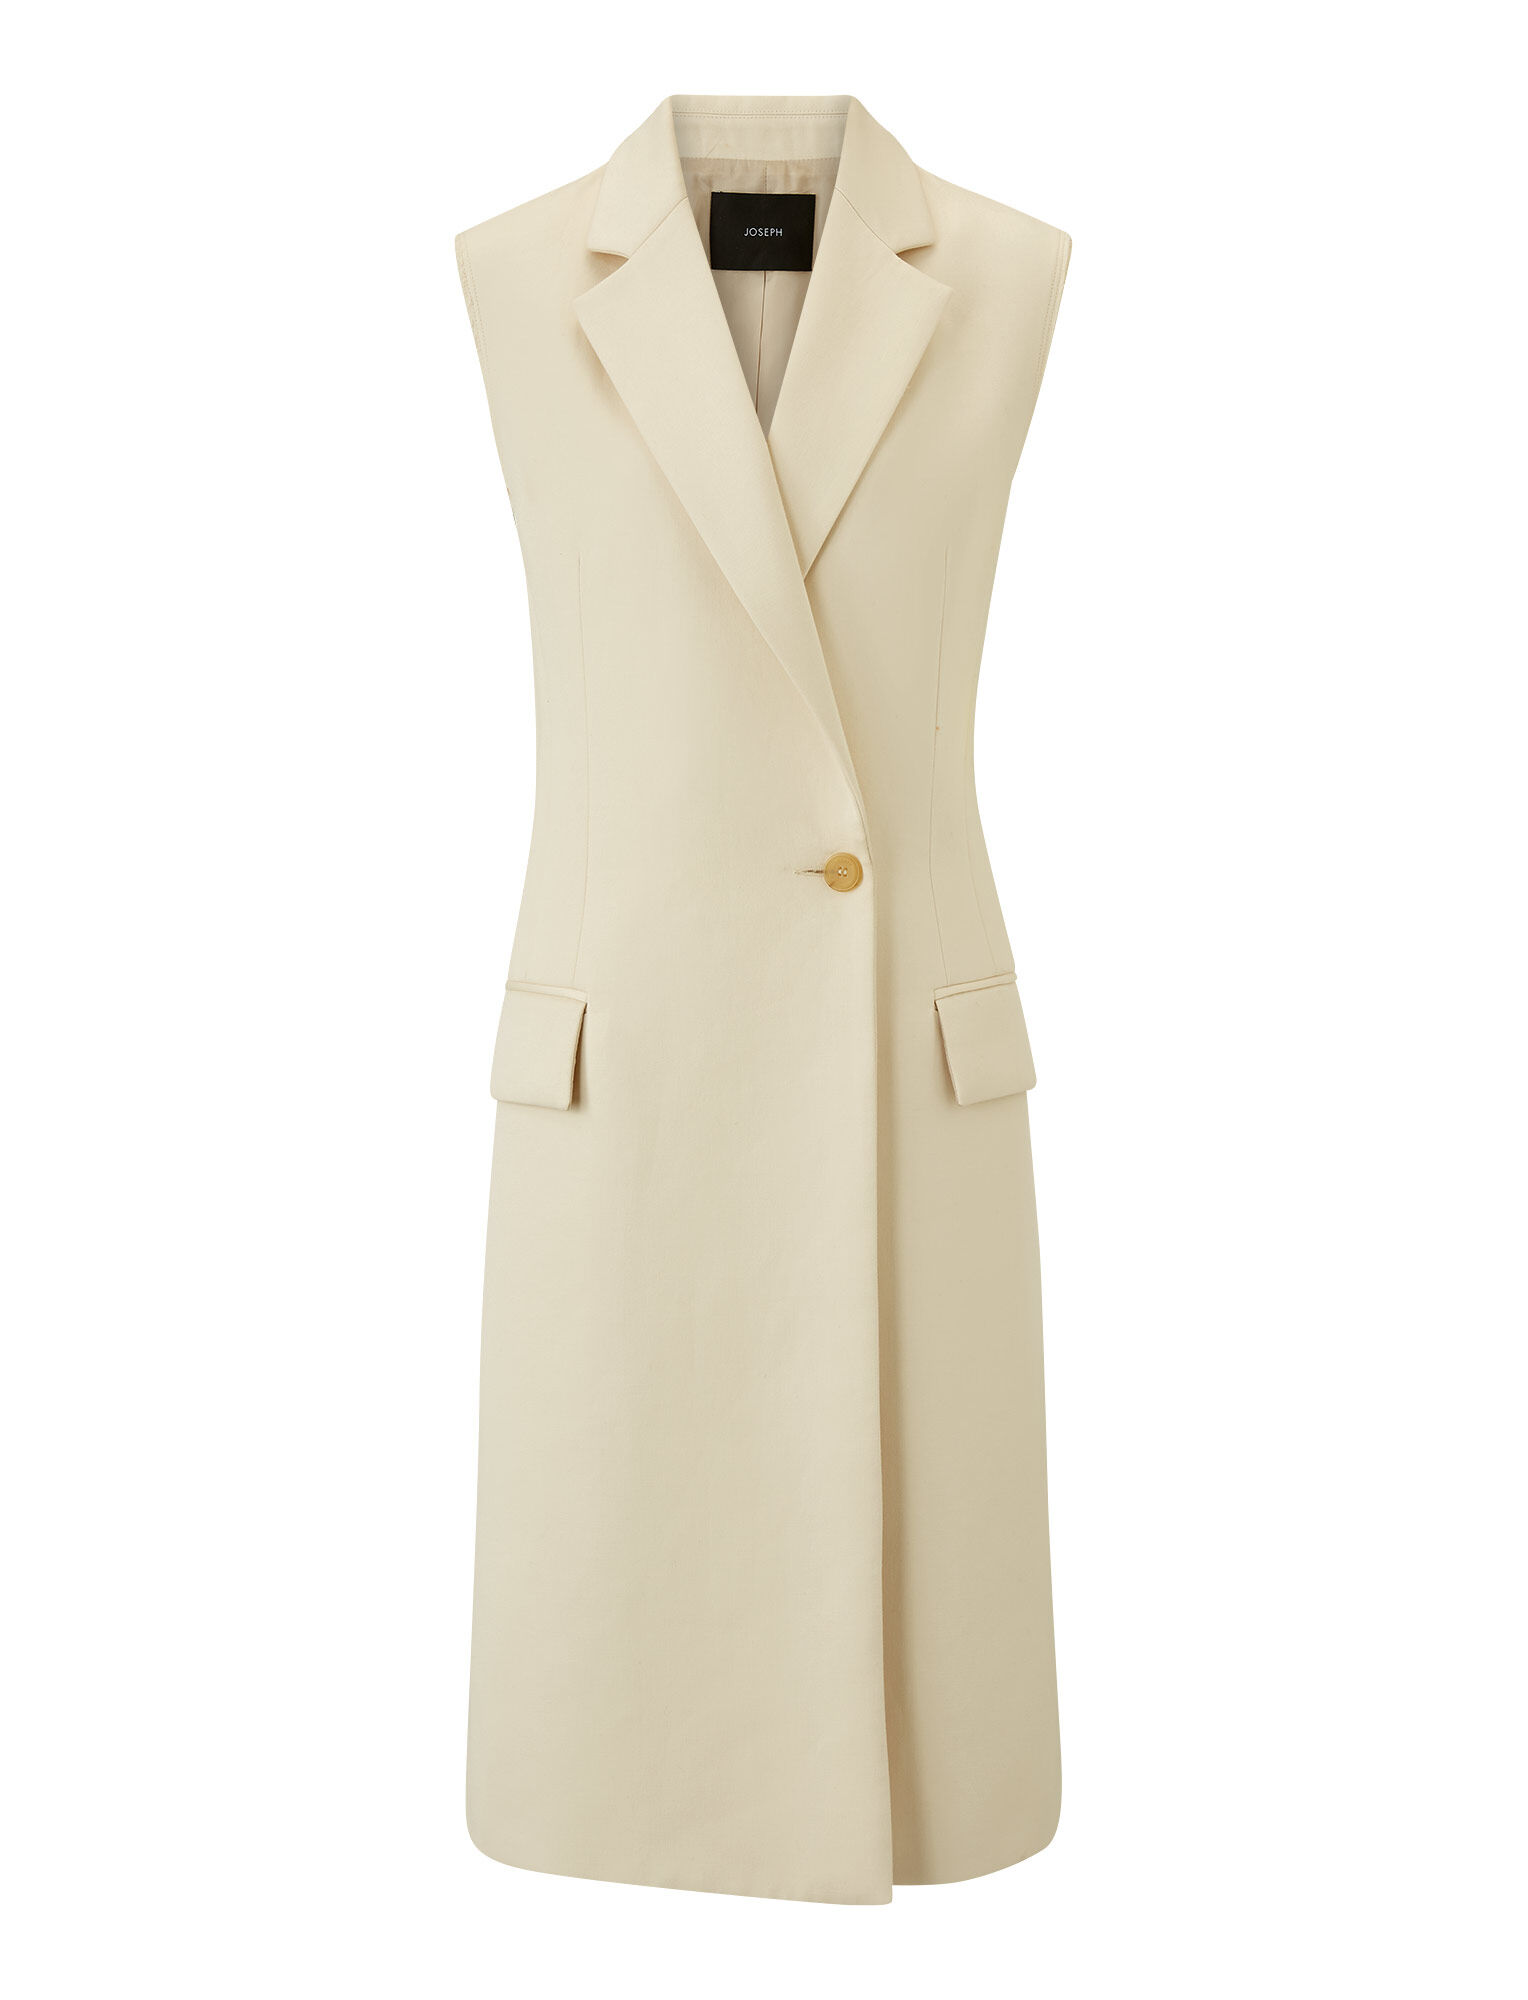 Joseph, Cyrielle Cotton Sateen Coat, in CREAM